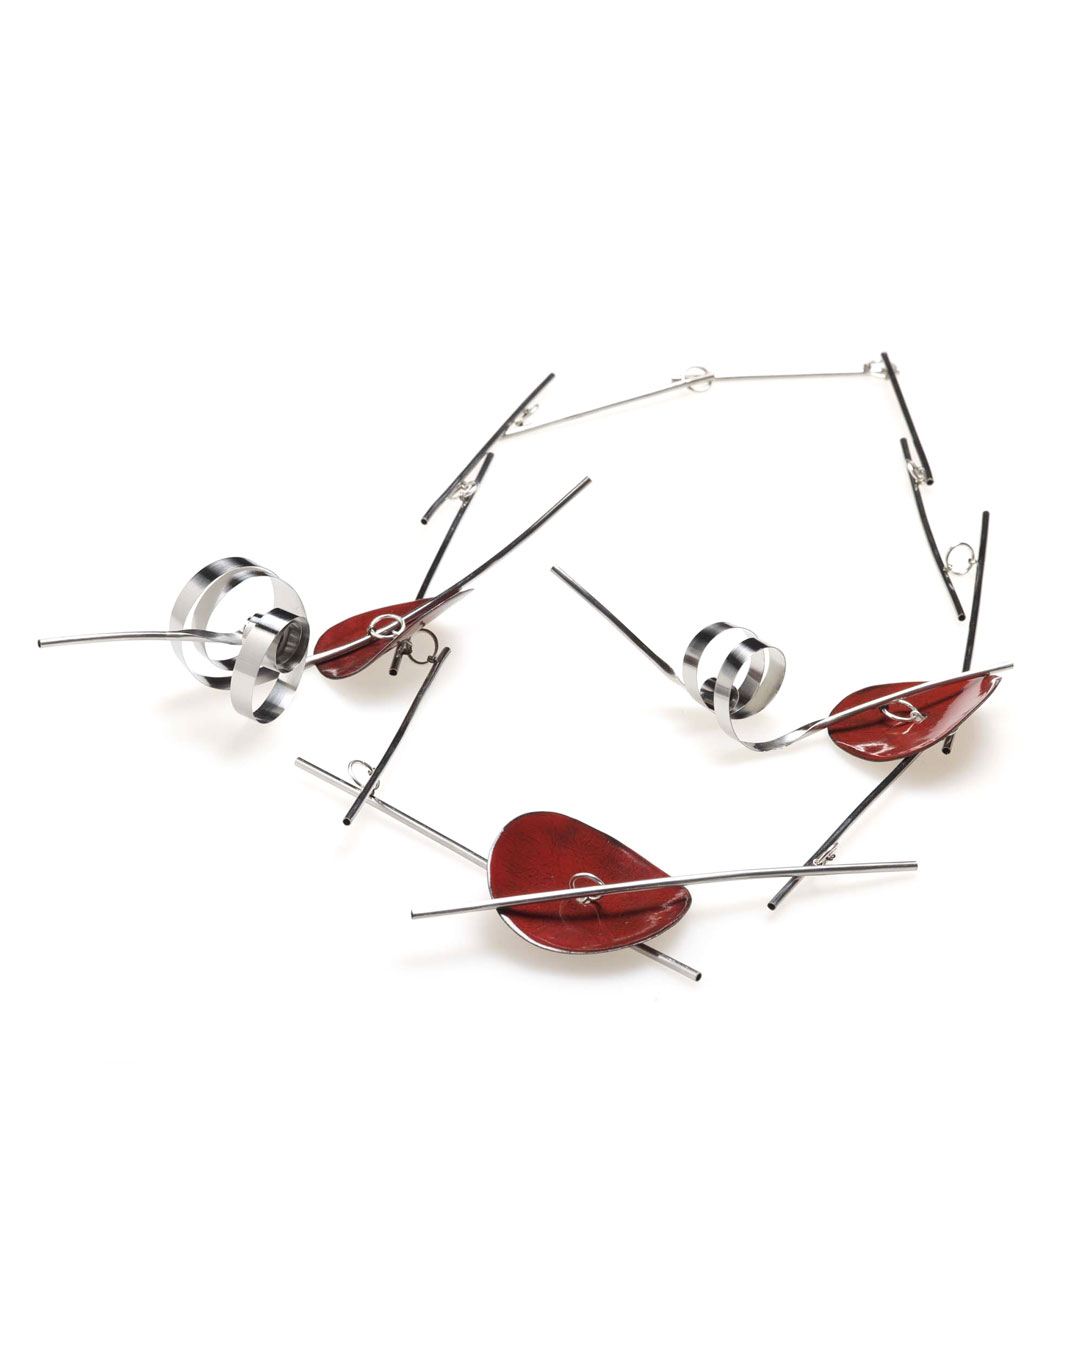 Andrea Wippermann, Japanischer Garten III (Japanese Garden III), 2011, necklace; enamelled copper and steel, silver, gold, 390 x 270 x 39 mm, €3650